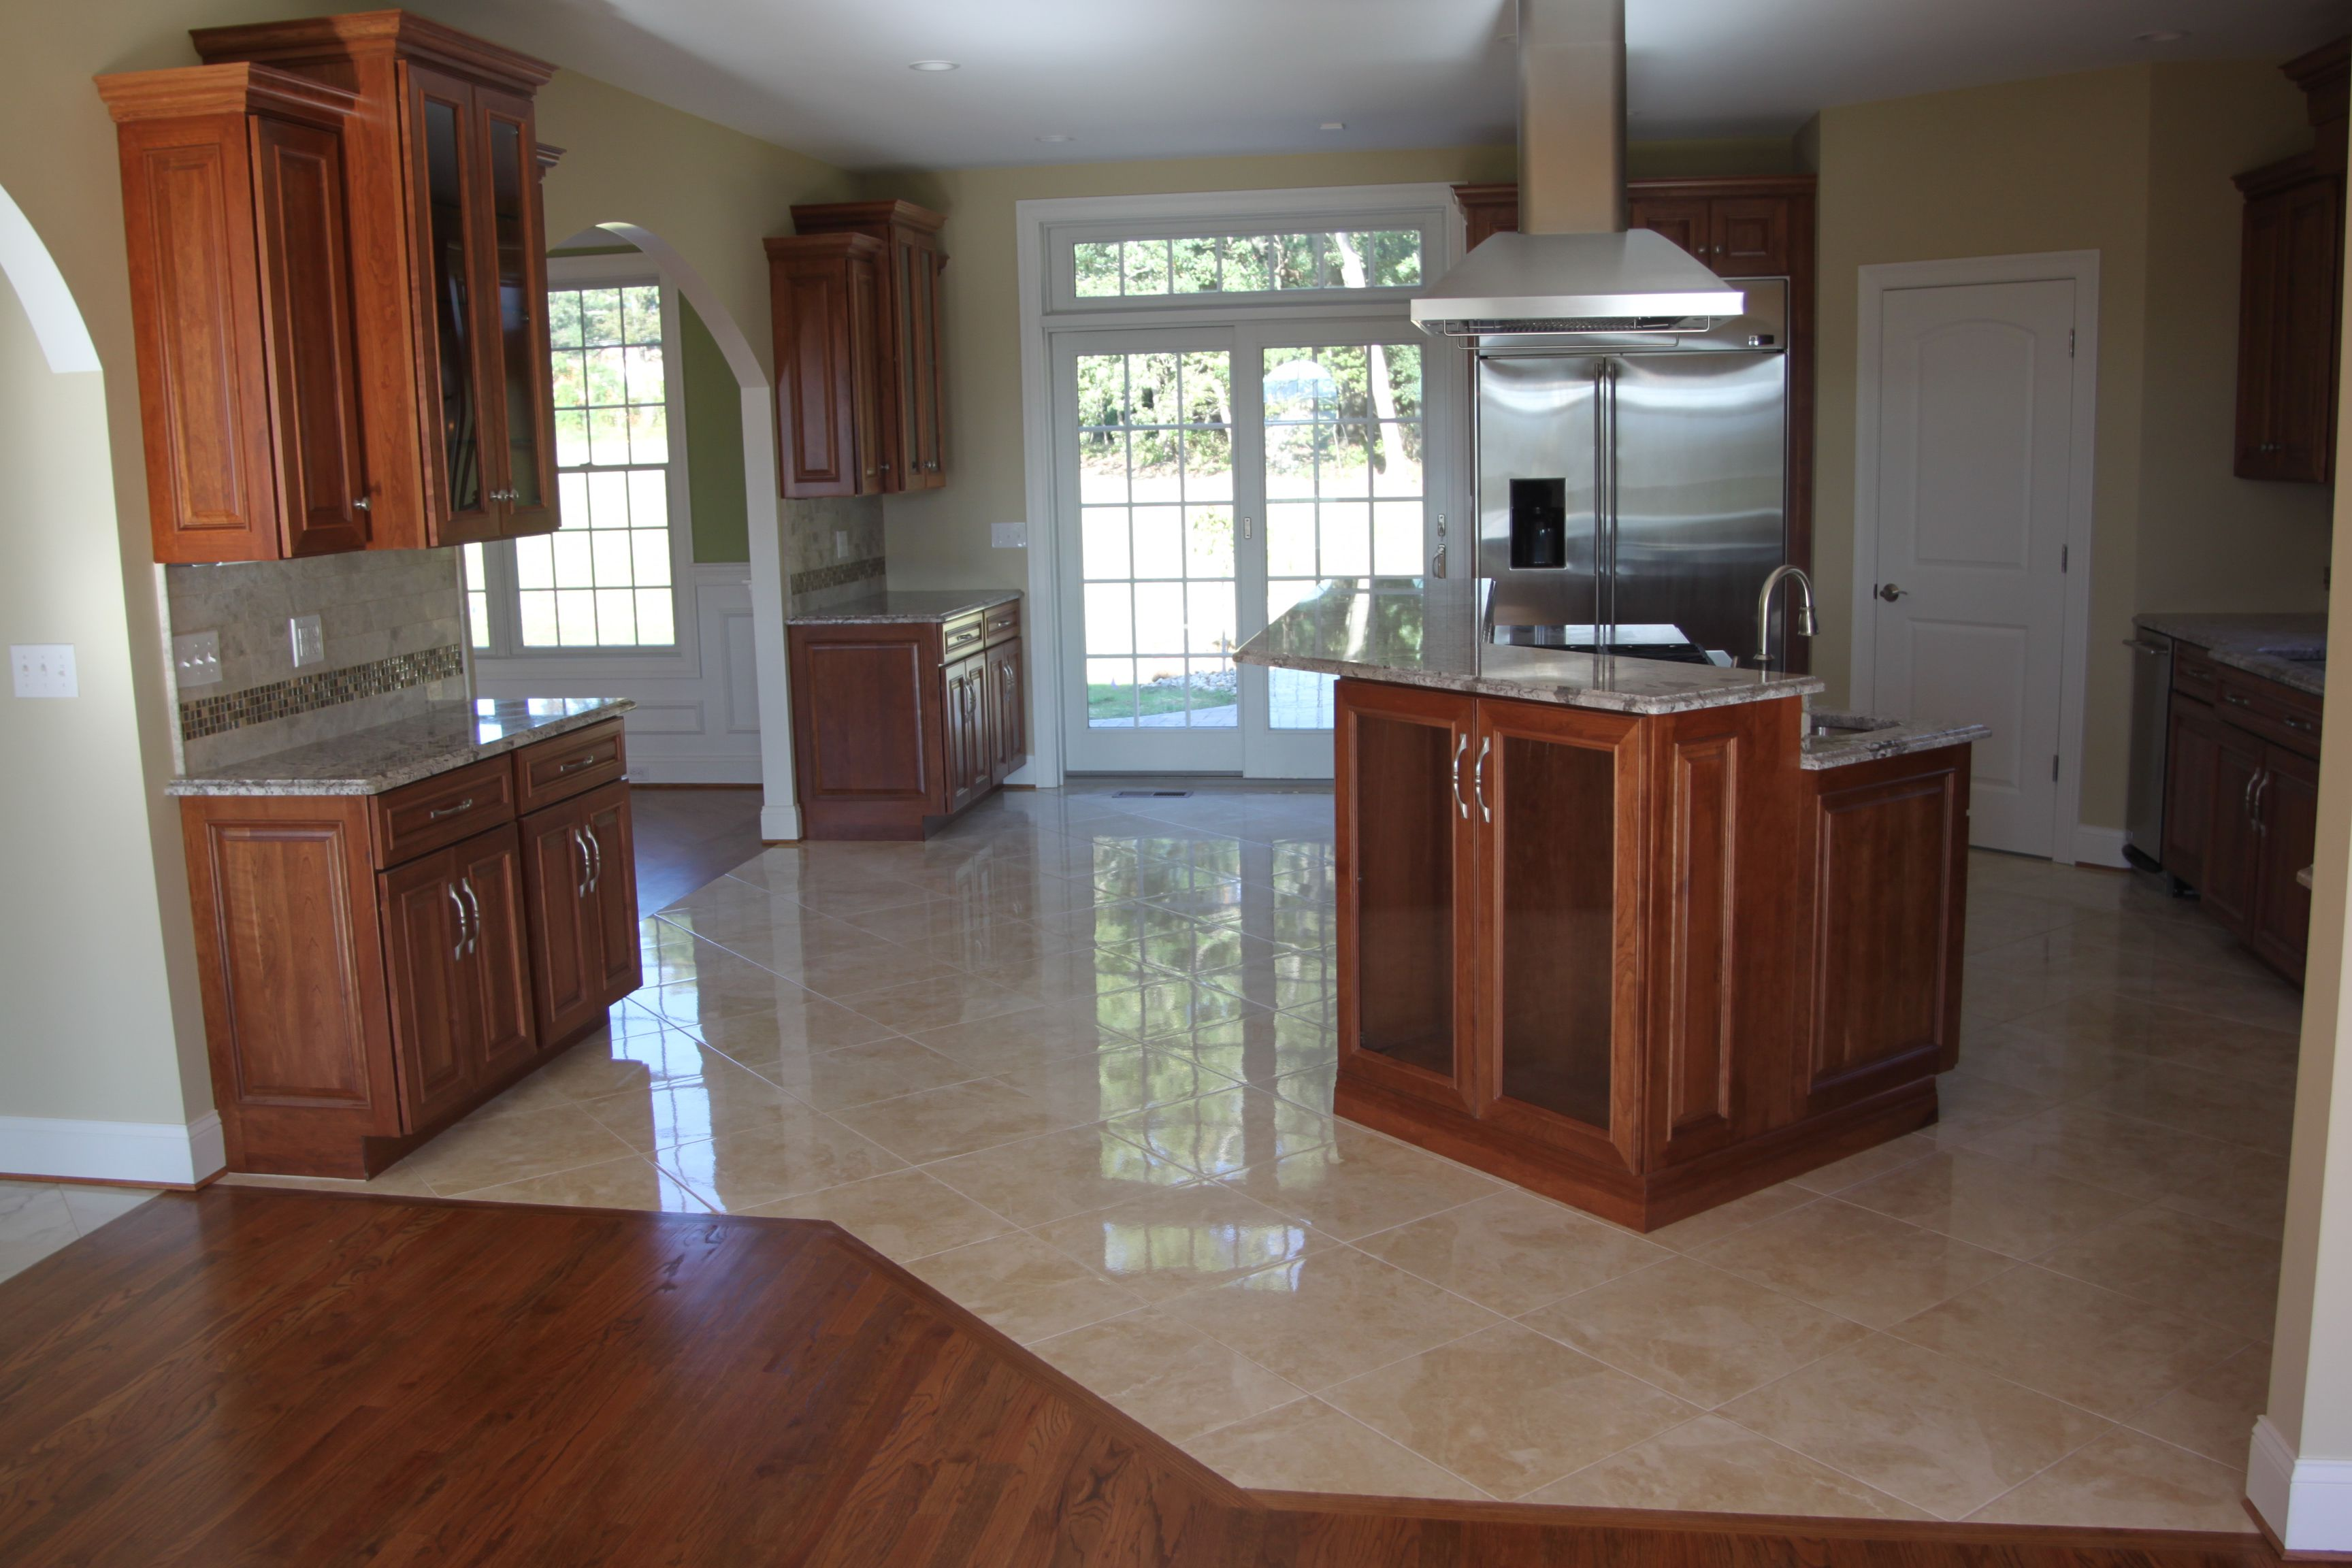 Floor tile designs ideas to enhance your floor appearance for Hardwood floors kitchen